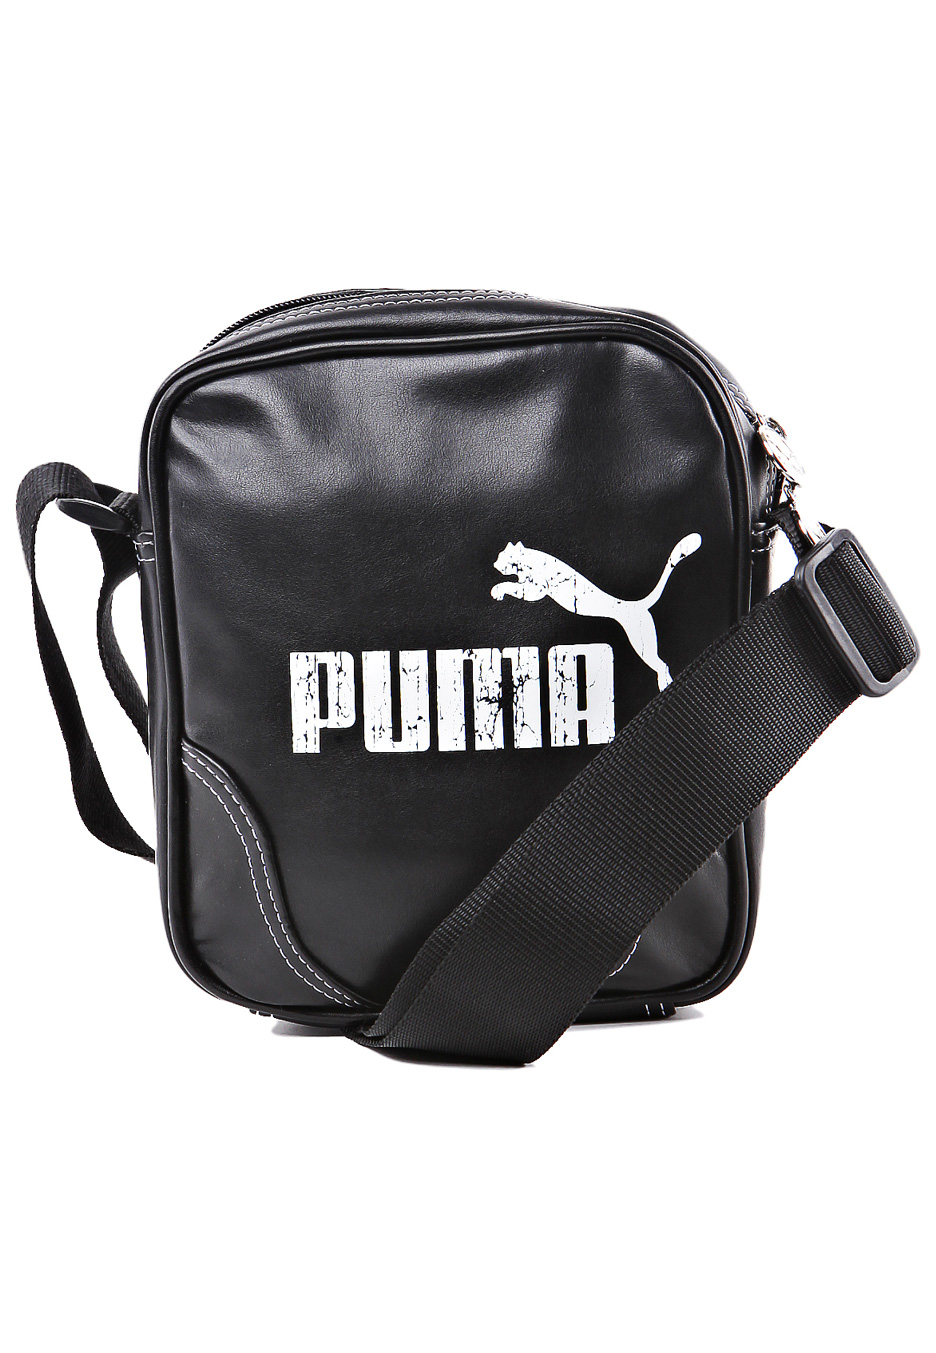 f2c5456d861b puma portable bag cheap   OFF62% Discounted